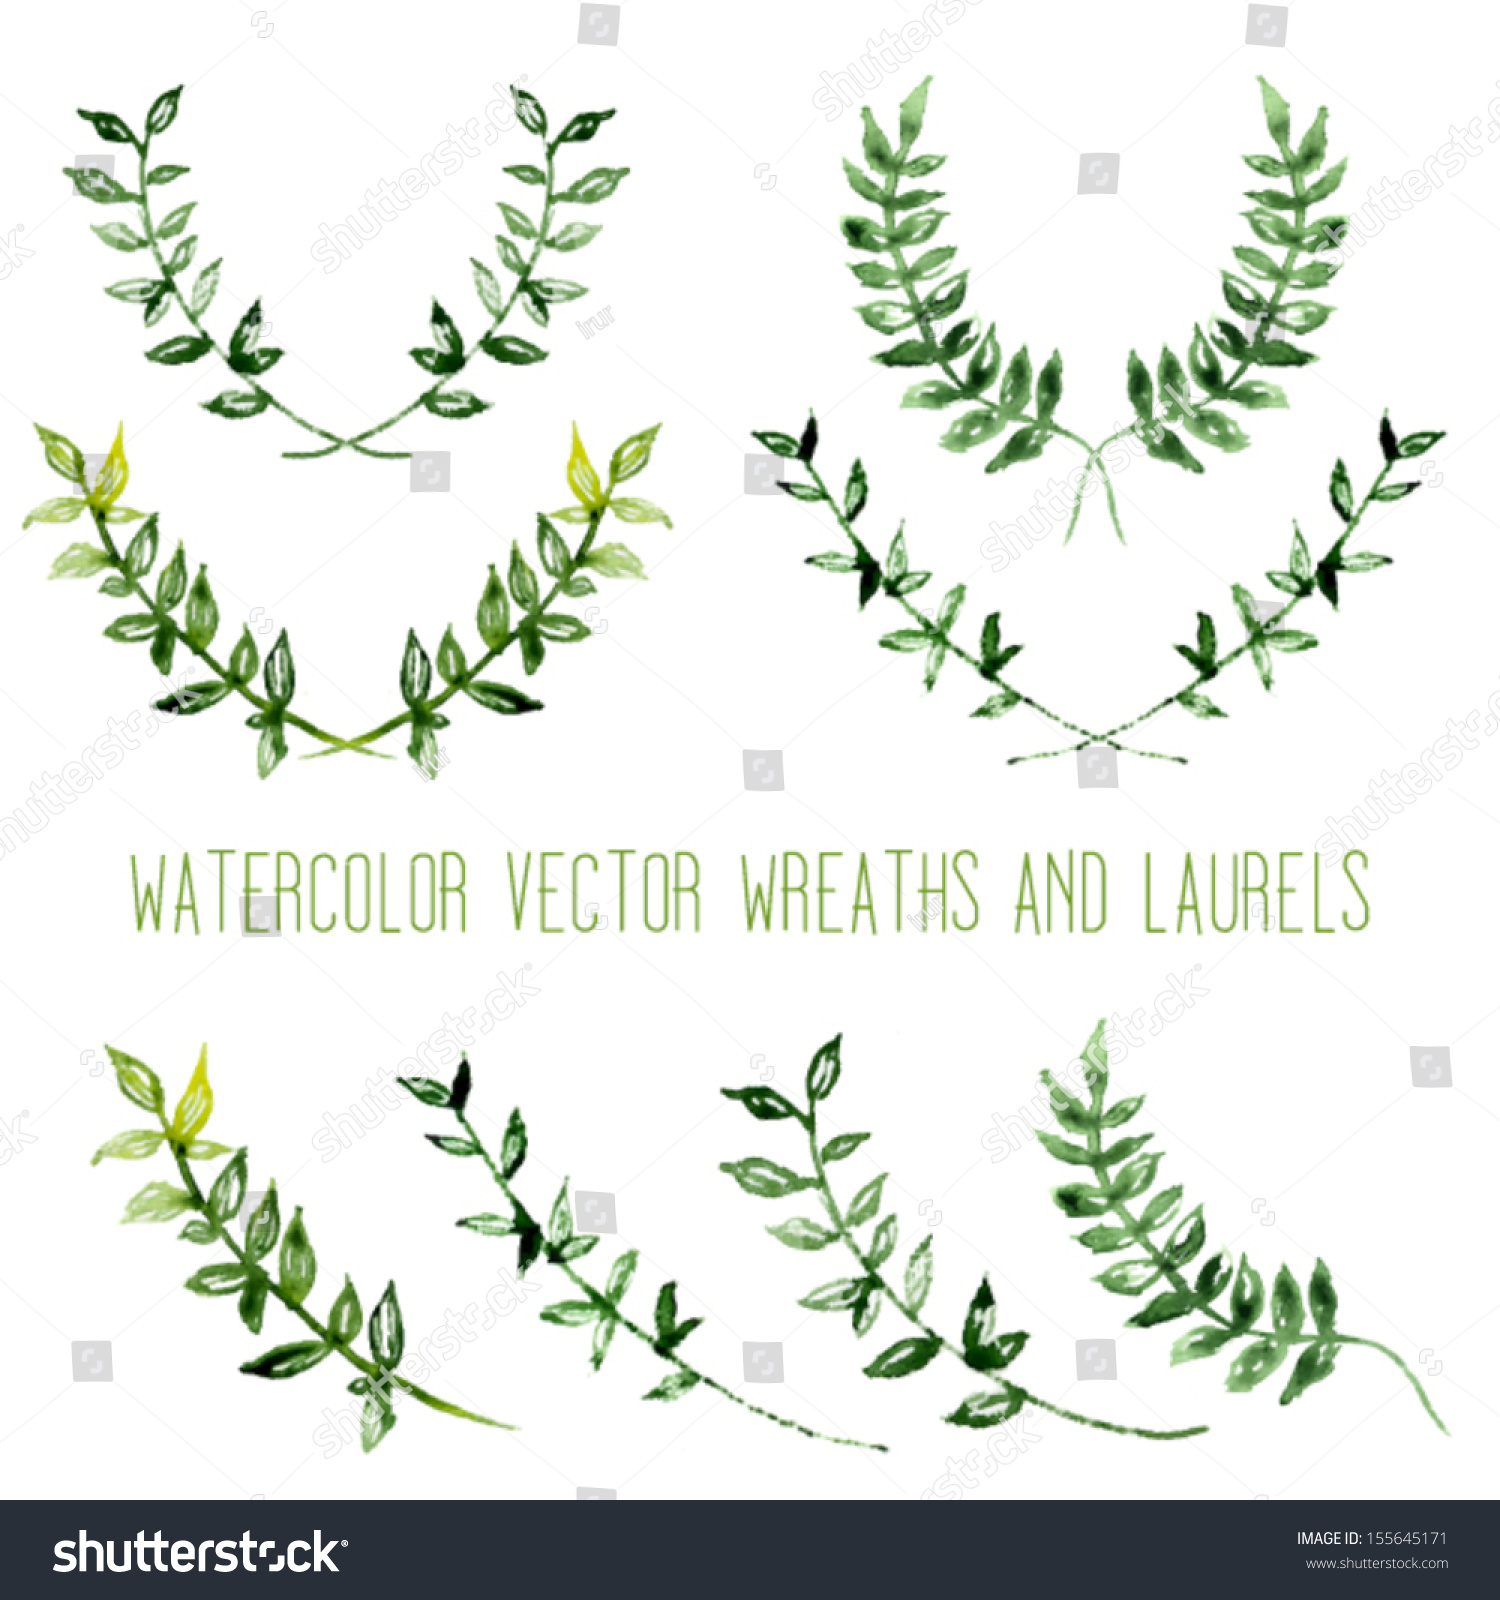 Of Wreaths Watercolor Vintage Floral Trendy Set Wreaths Stock Vector